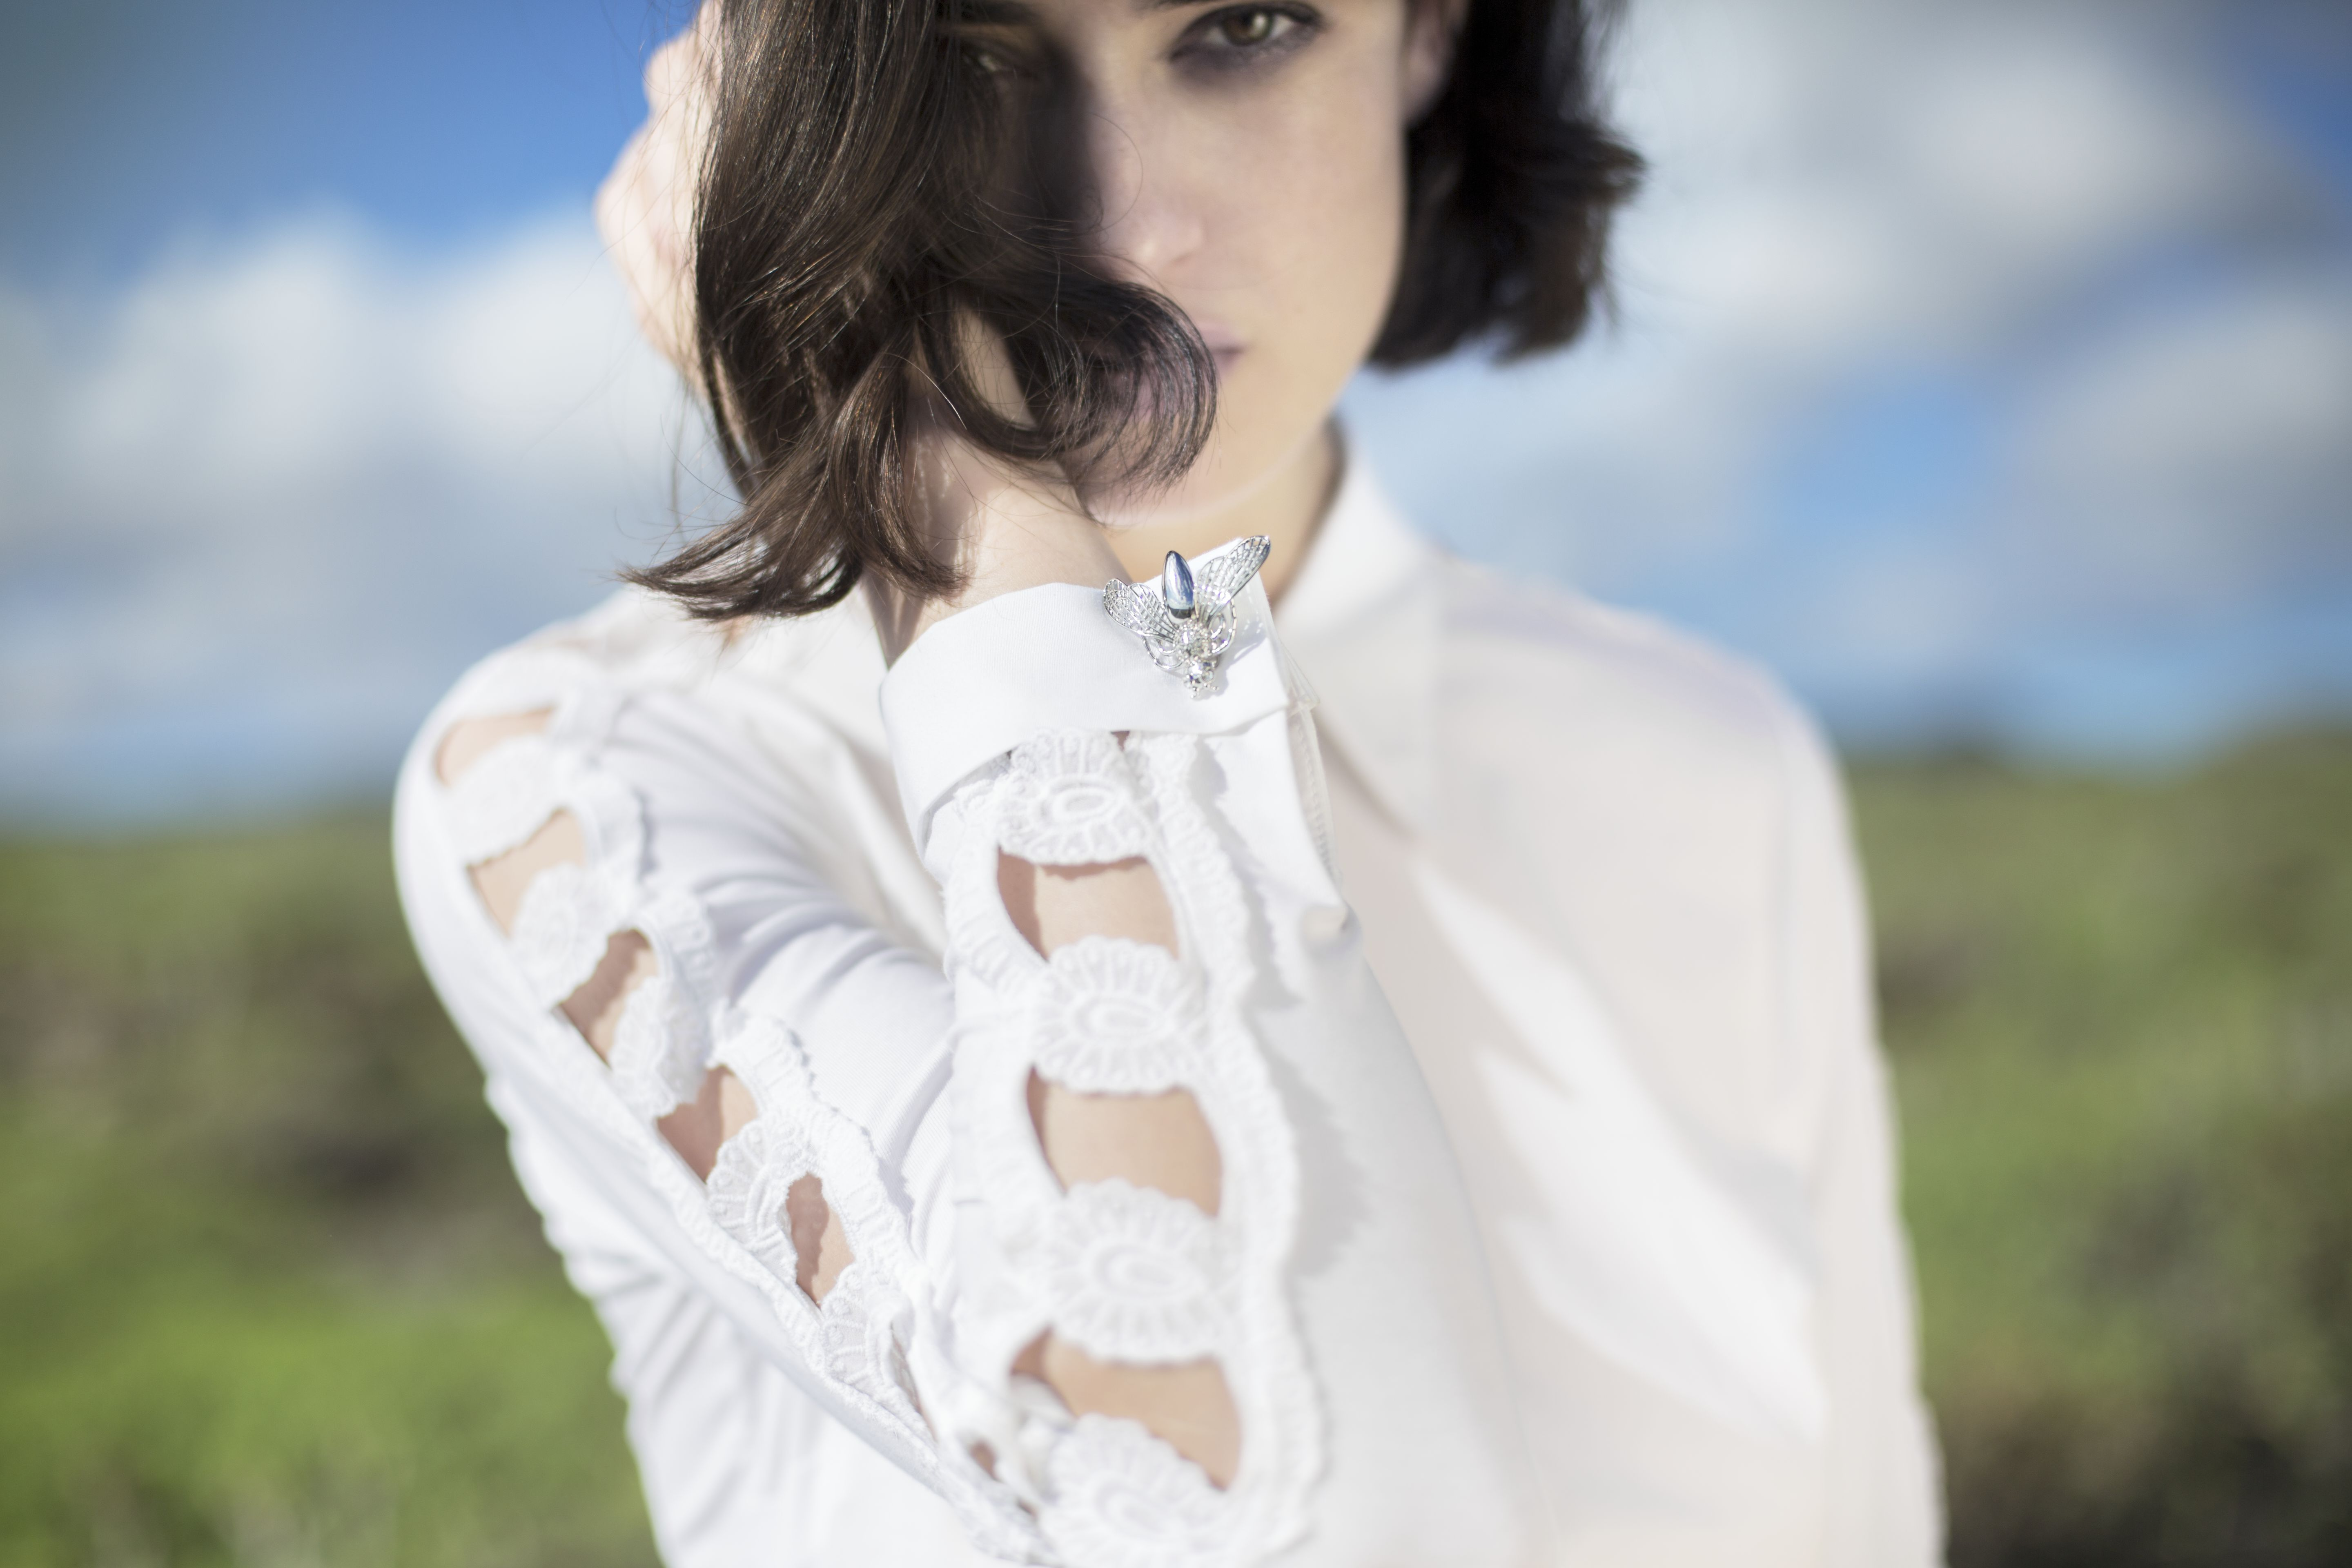 Designer Anne Fontaine reinvents the white shirt every season. For summer she included cutouts